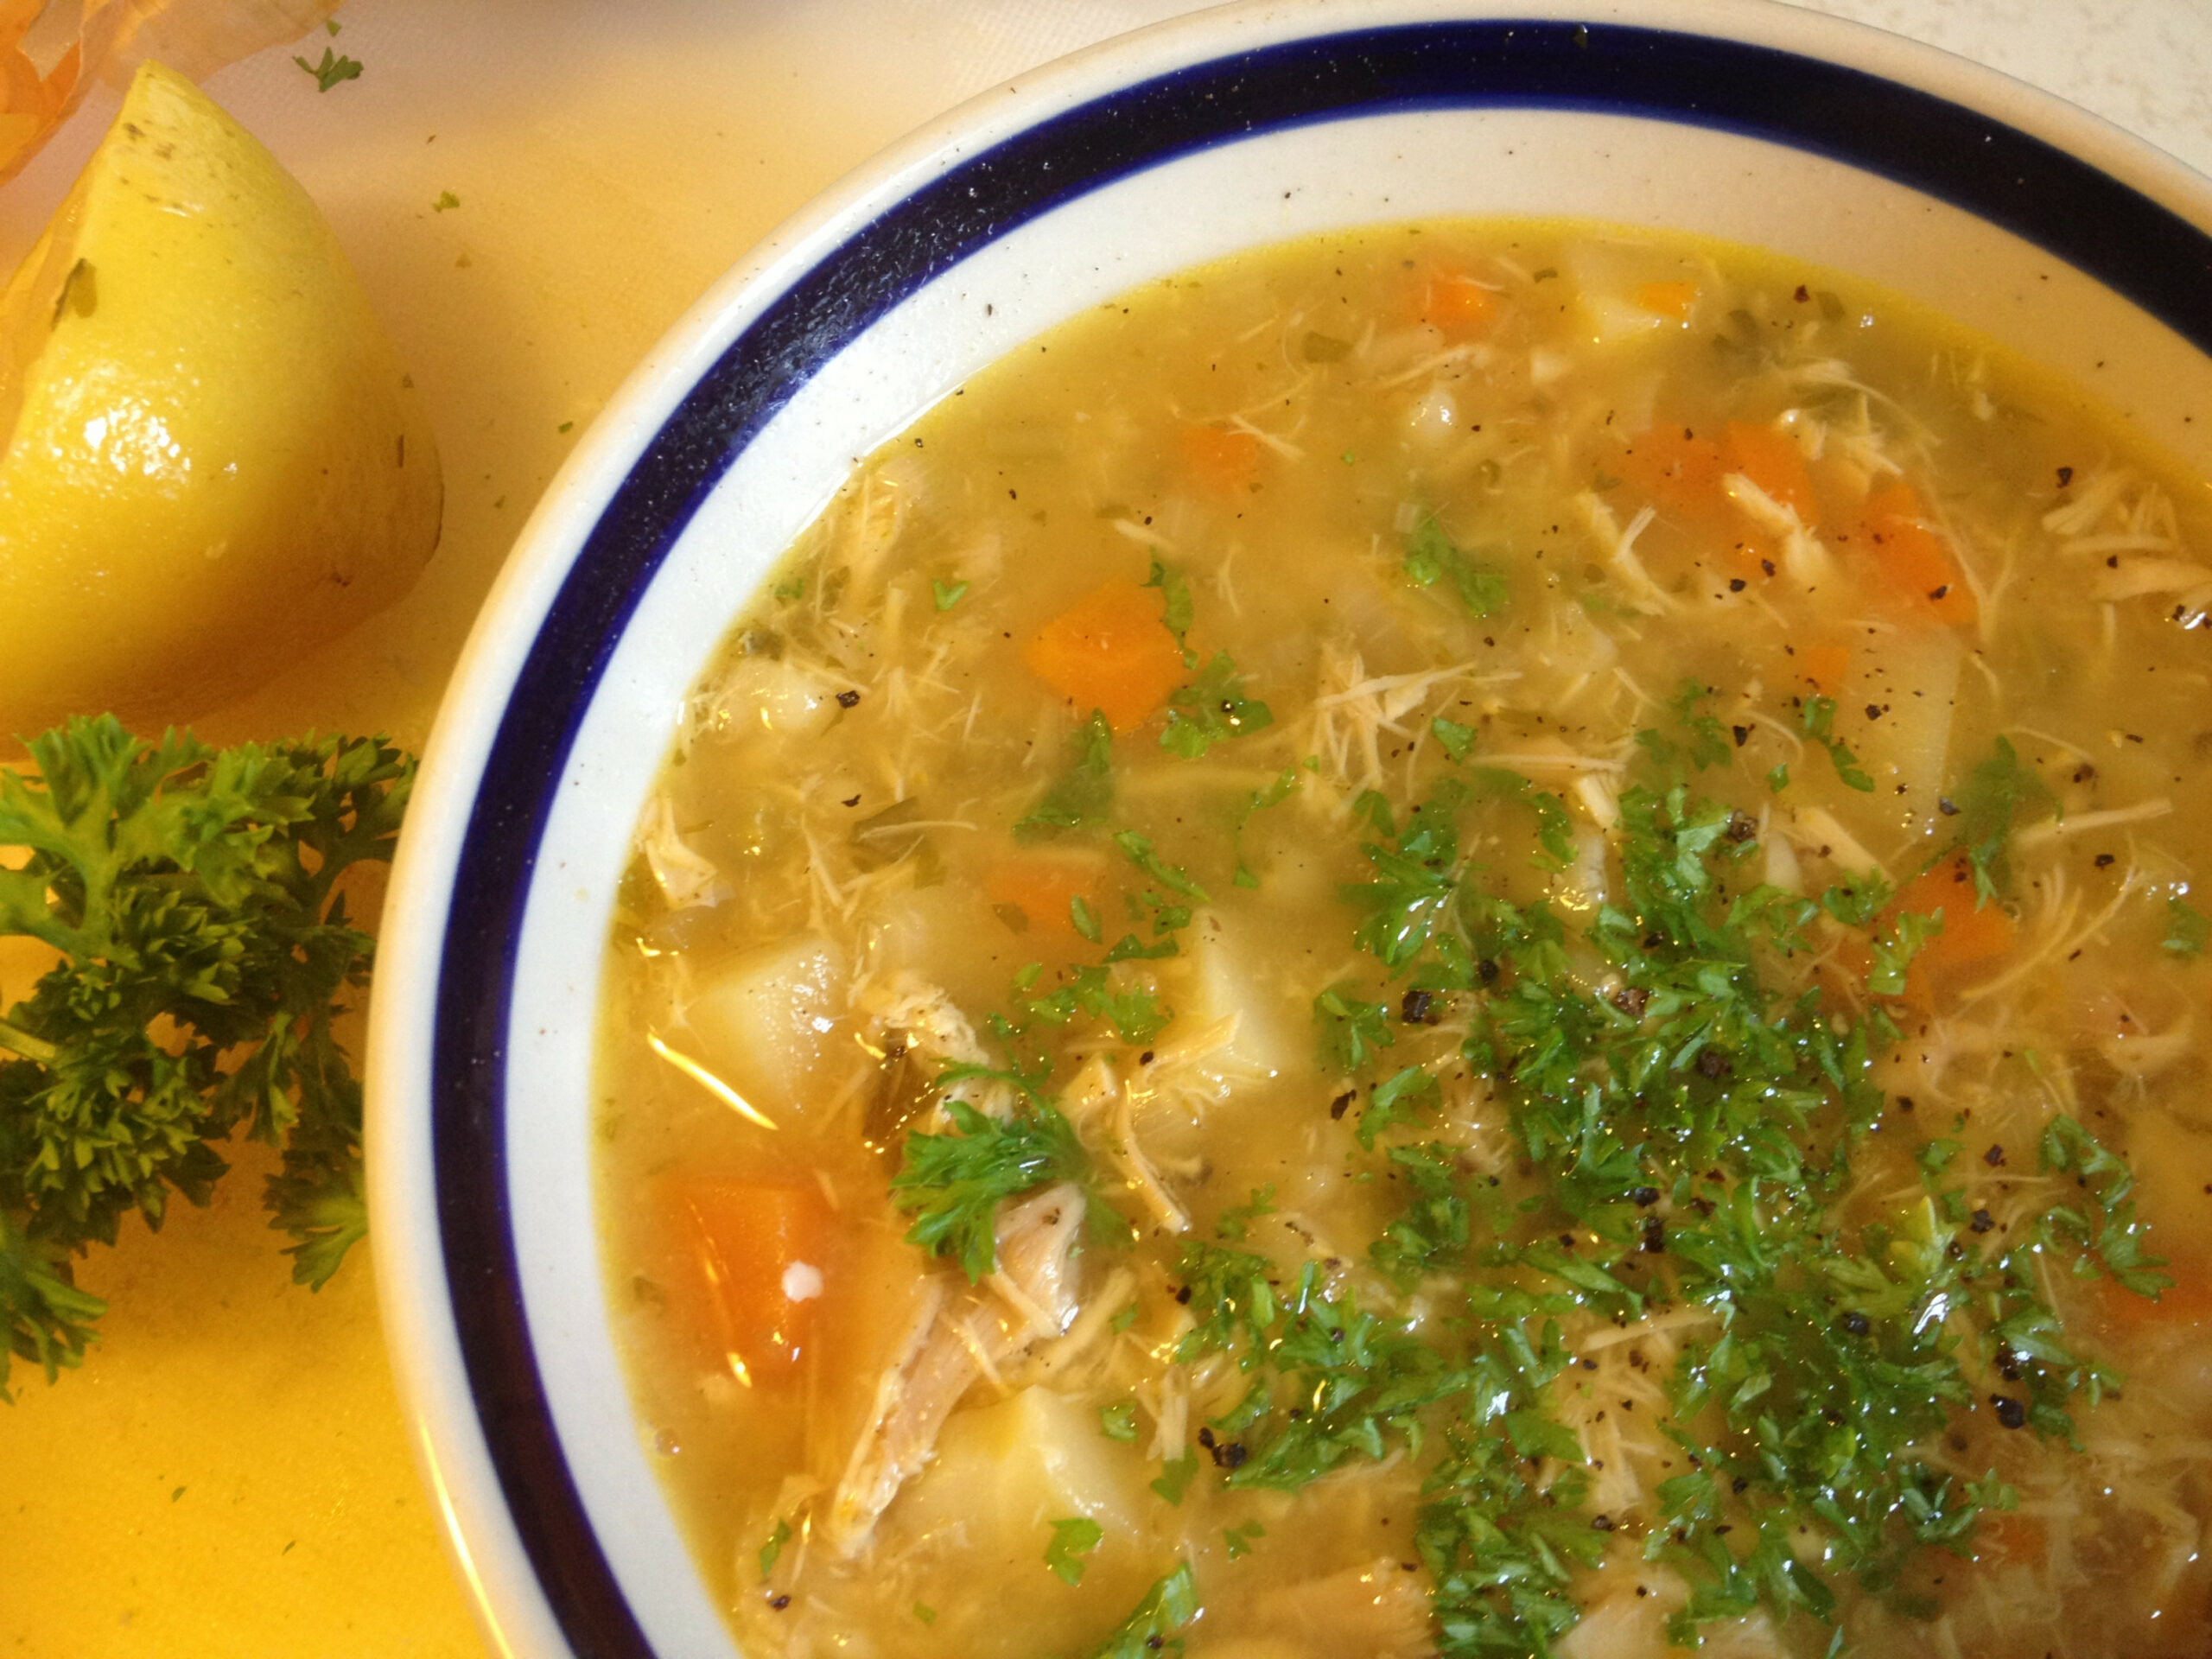 Heal-All Chicken Soup Recipe | Cauldrons and Cupcakes - recipes using chicken broth